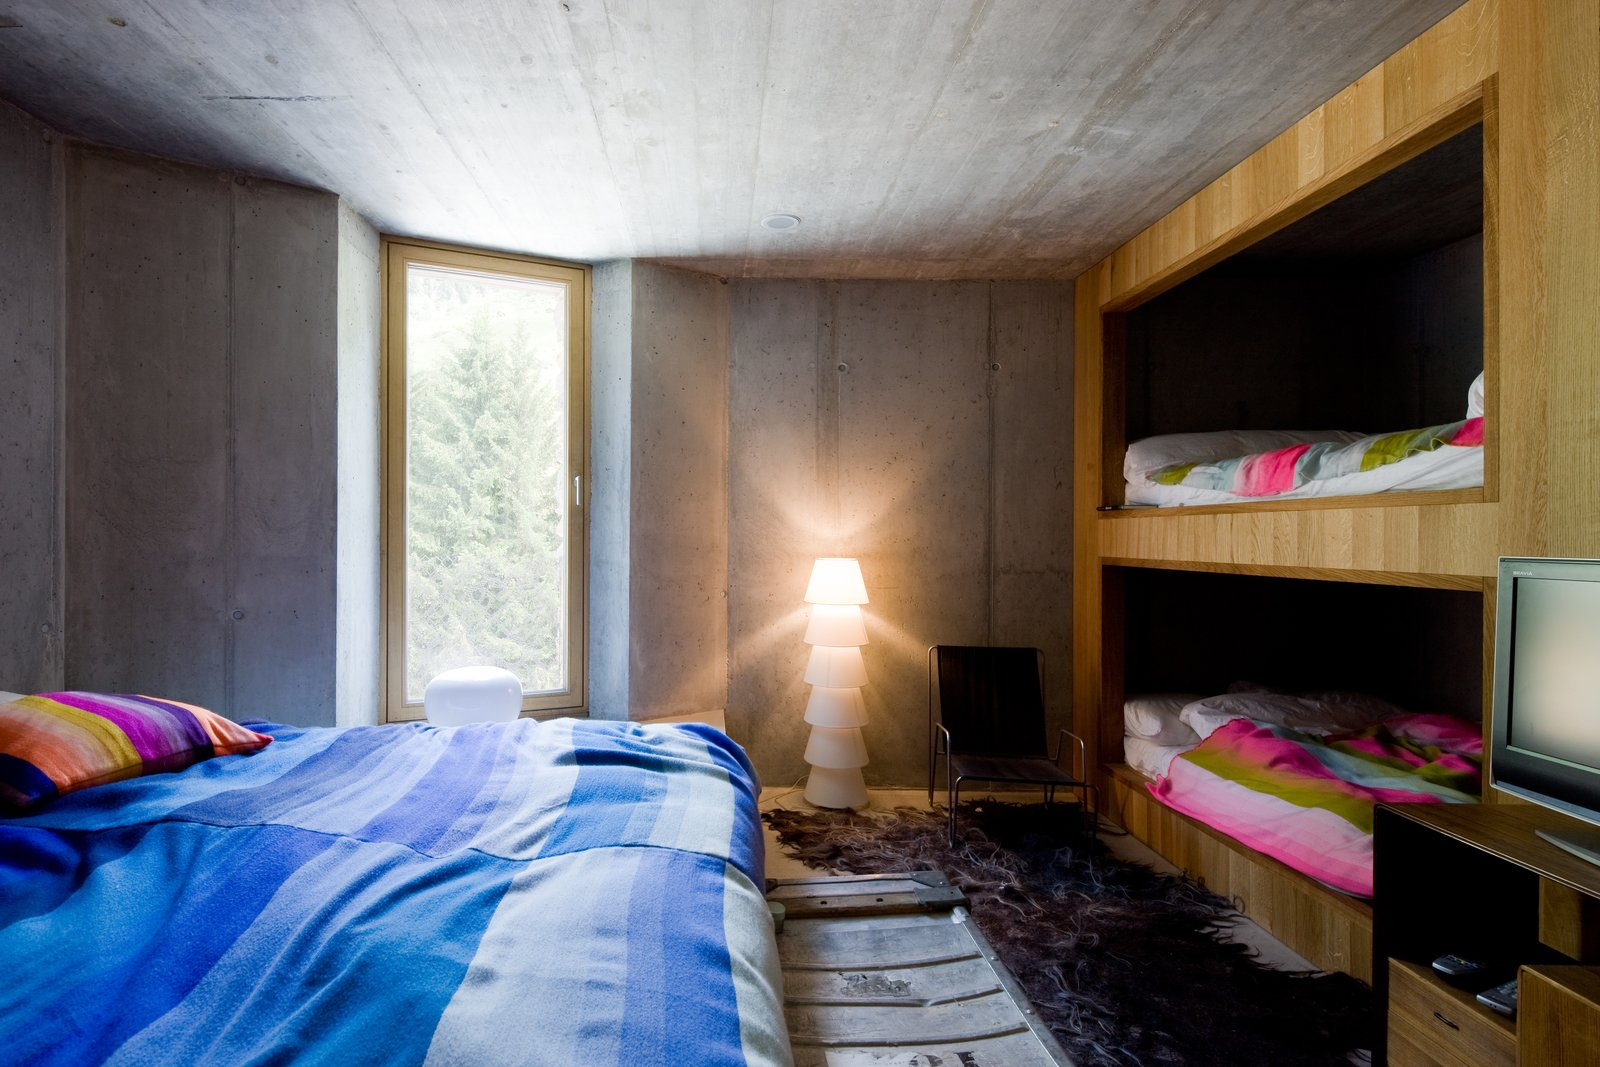 Kids, Bed, Bunks, Bedroom, Teen, Pre-Teen, Neutral, Chair, Lamps, and Rug  Best Kids Neutral Bunks Photos from Stay in a Swiss Vacation Home That's Literally Inside a Mountain